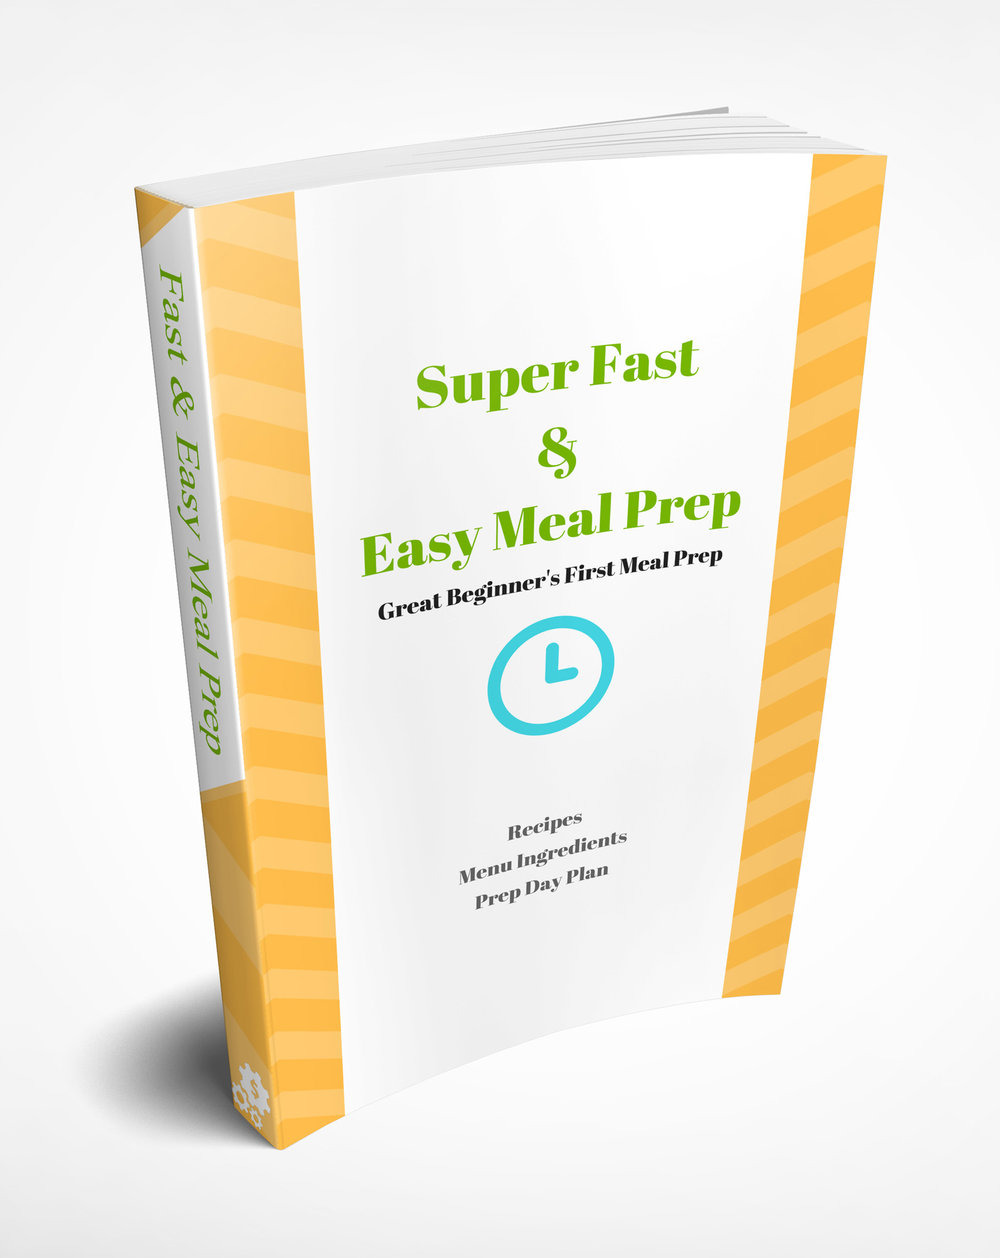 Super Fast and Easy Meal Prep Mock Up 2.jpg